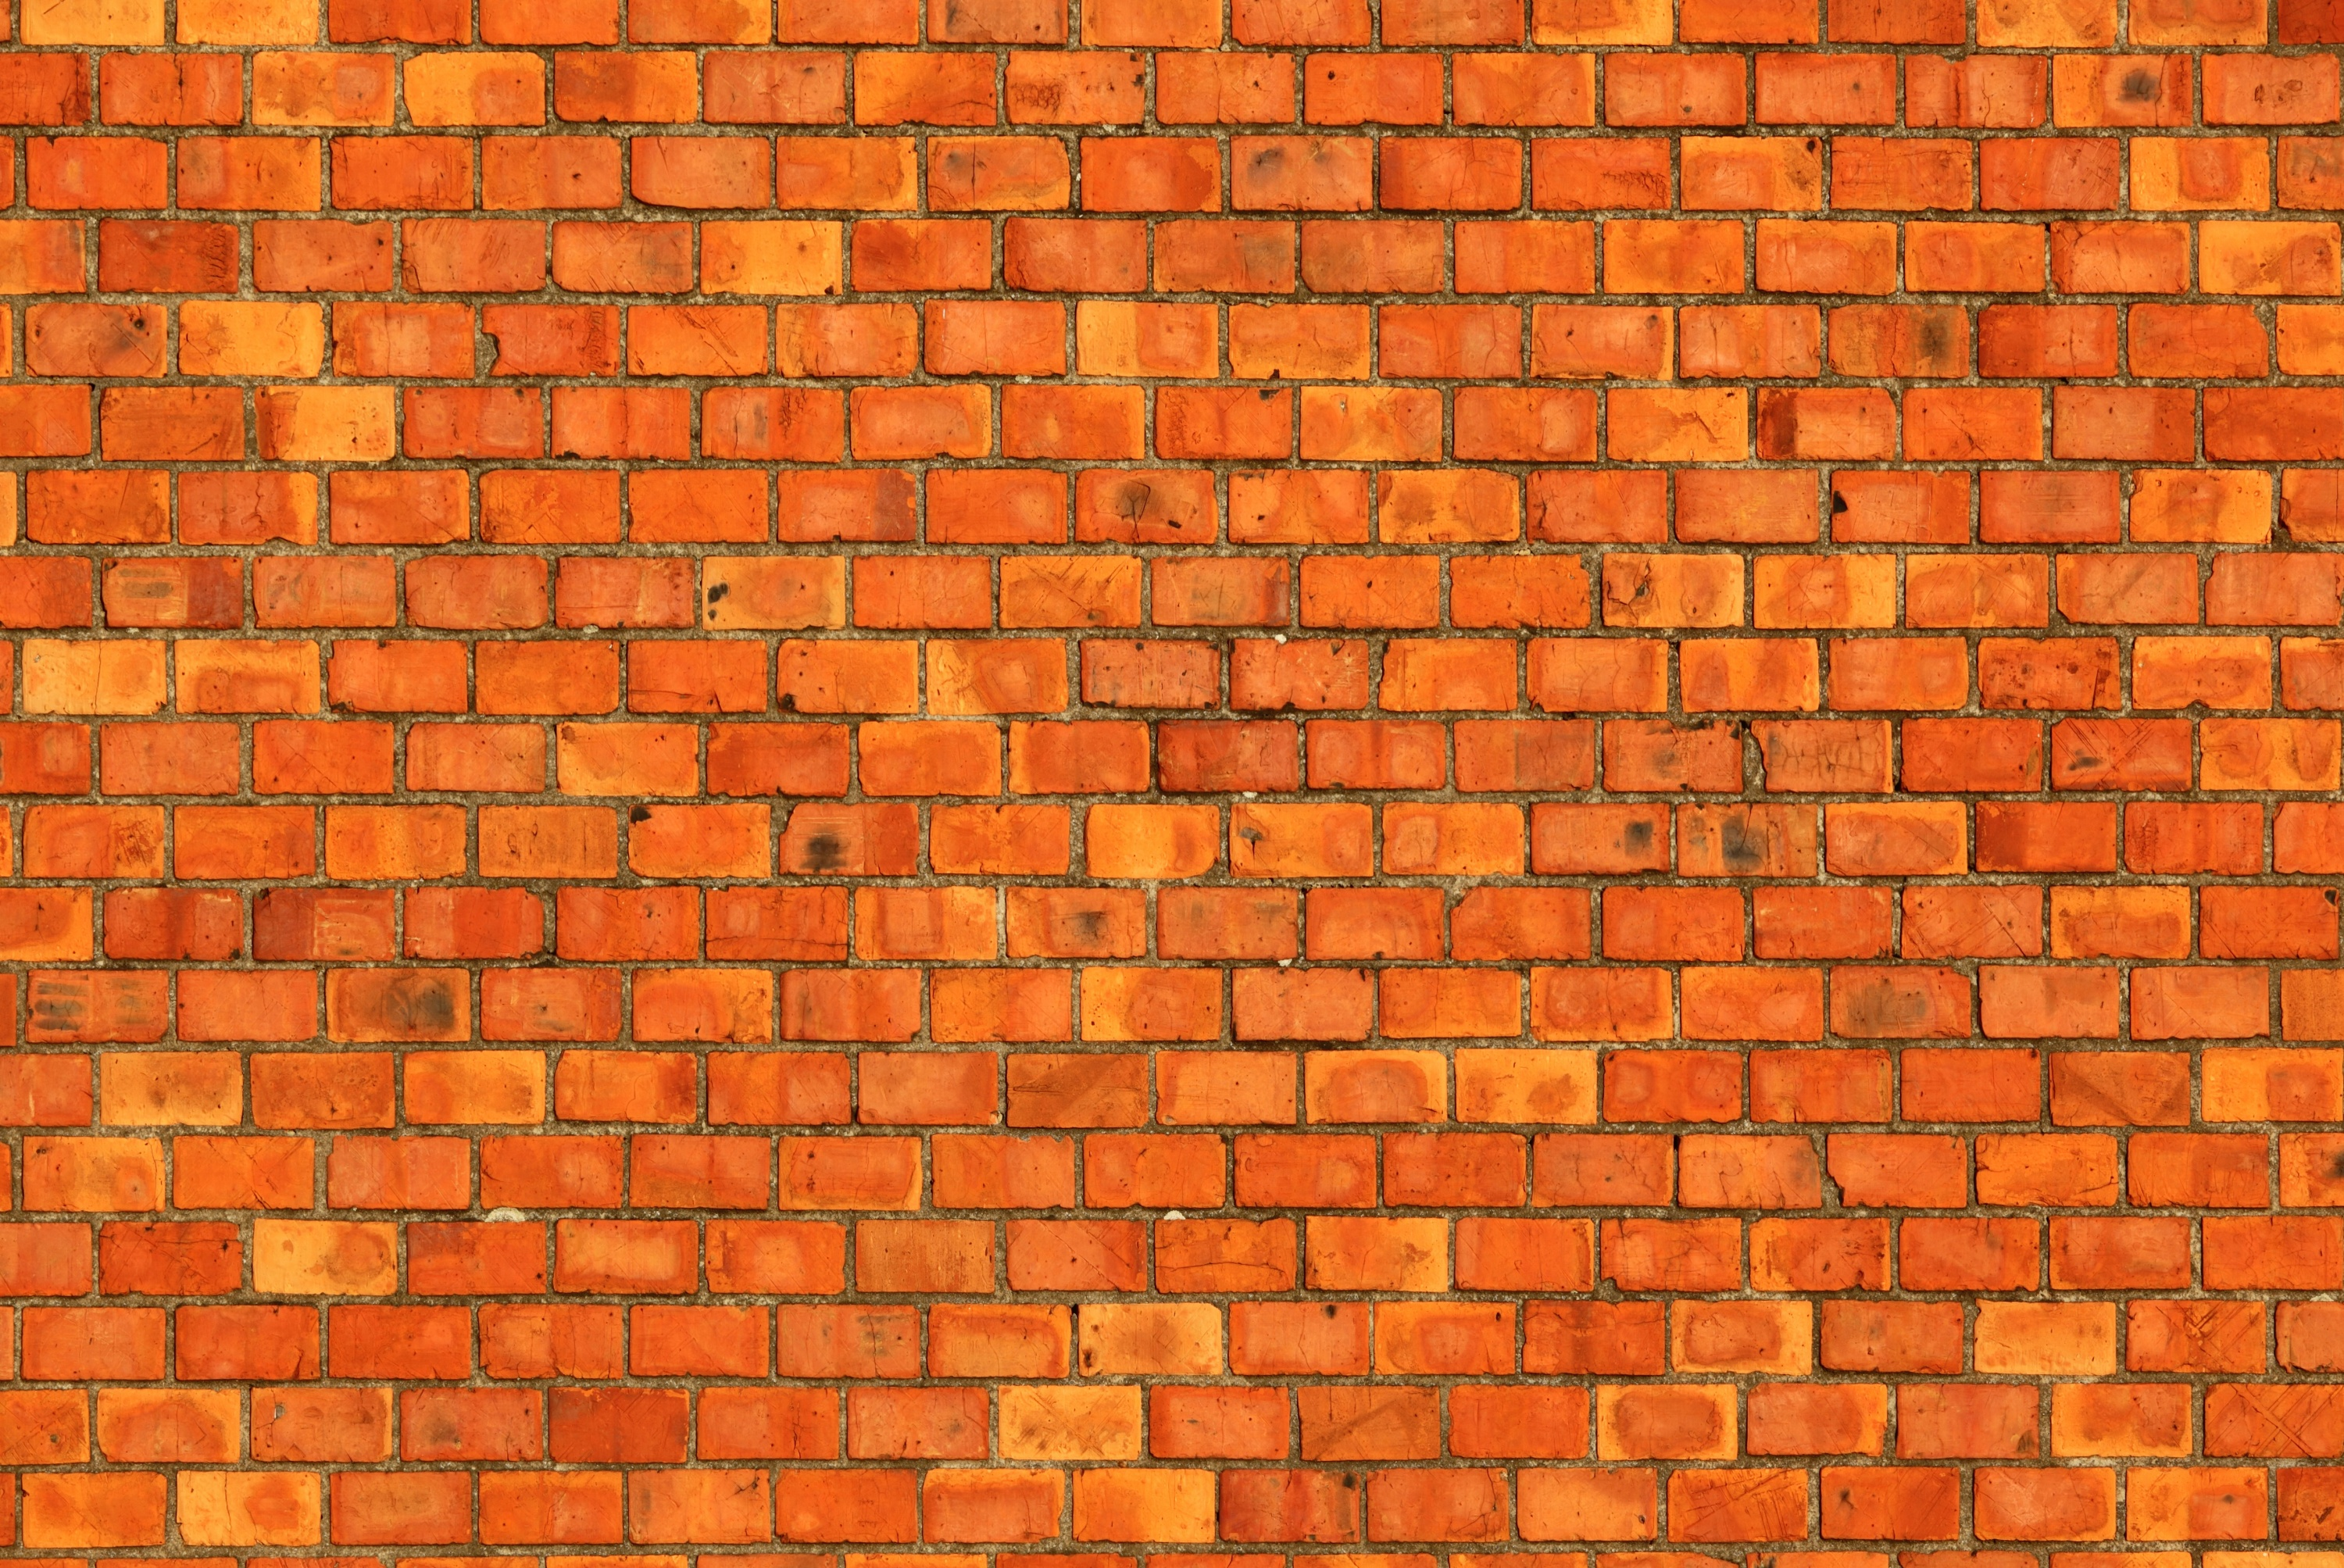 Brick Texture3370 Jpg Wall Texture Download Photo Image Bricks ...